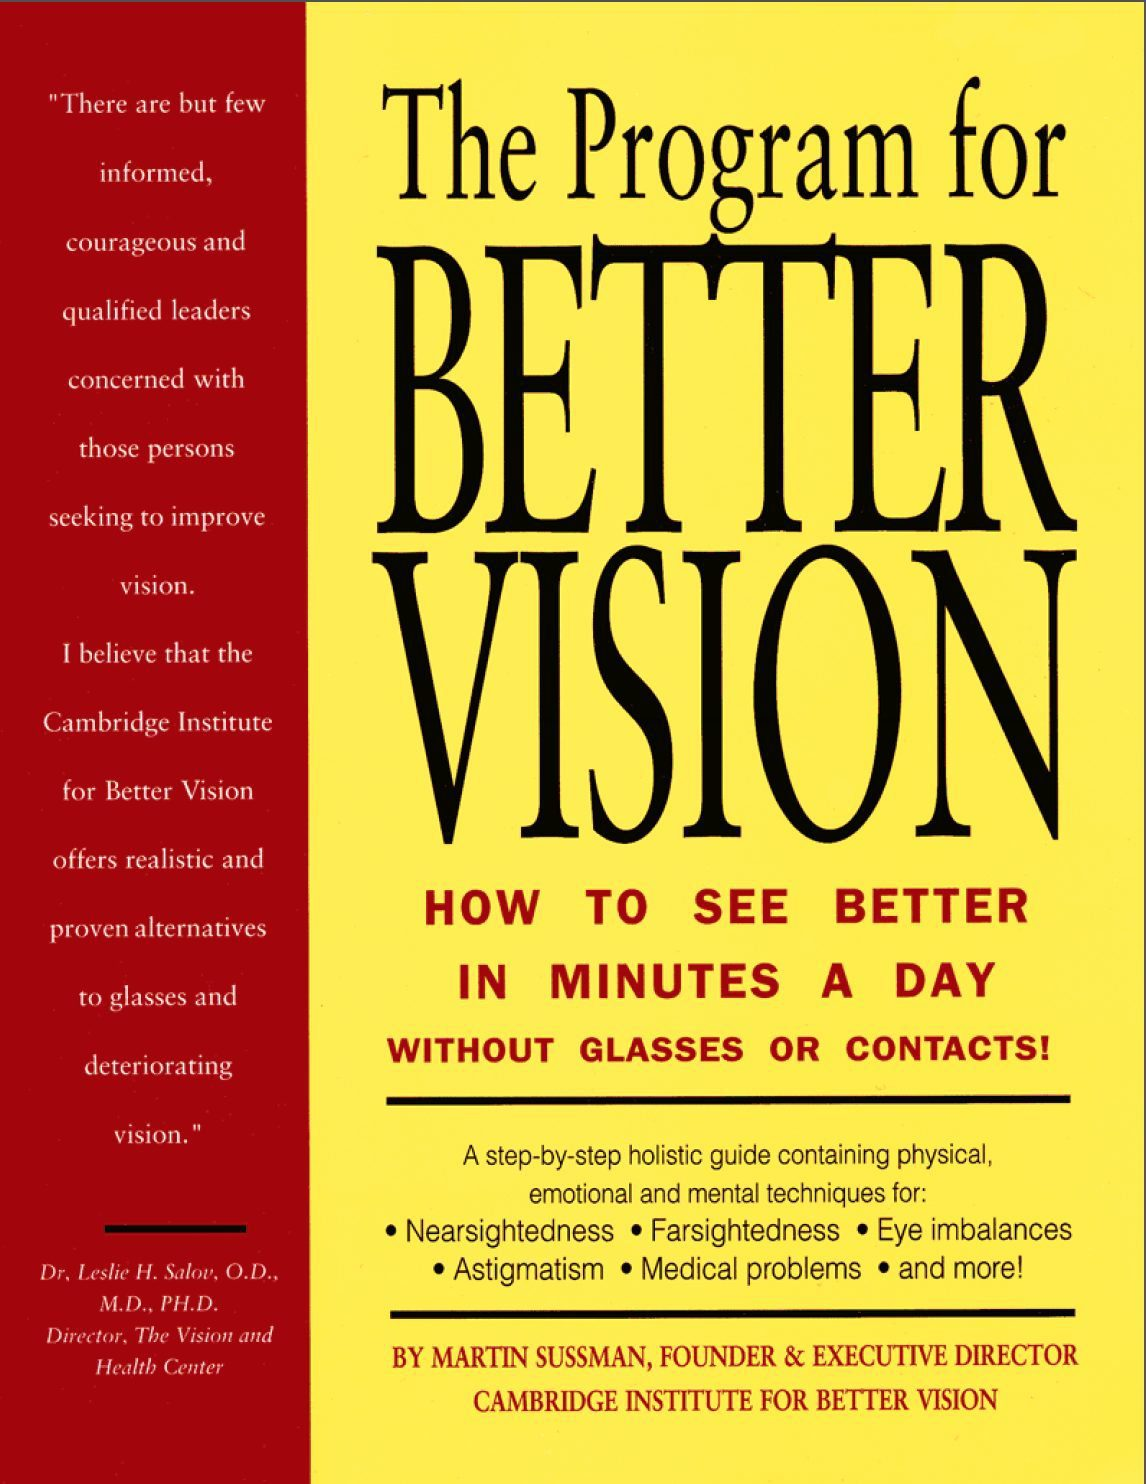 The Program for Better Vision Book: Beyond Eye Exercises to Improve Vision